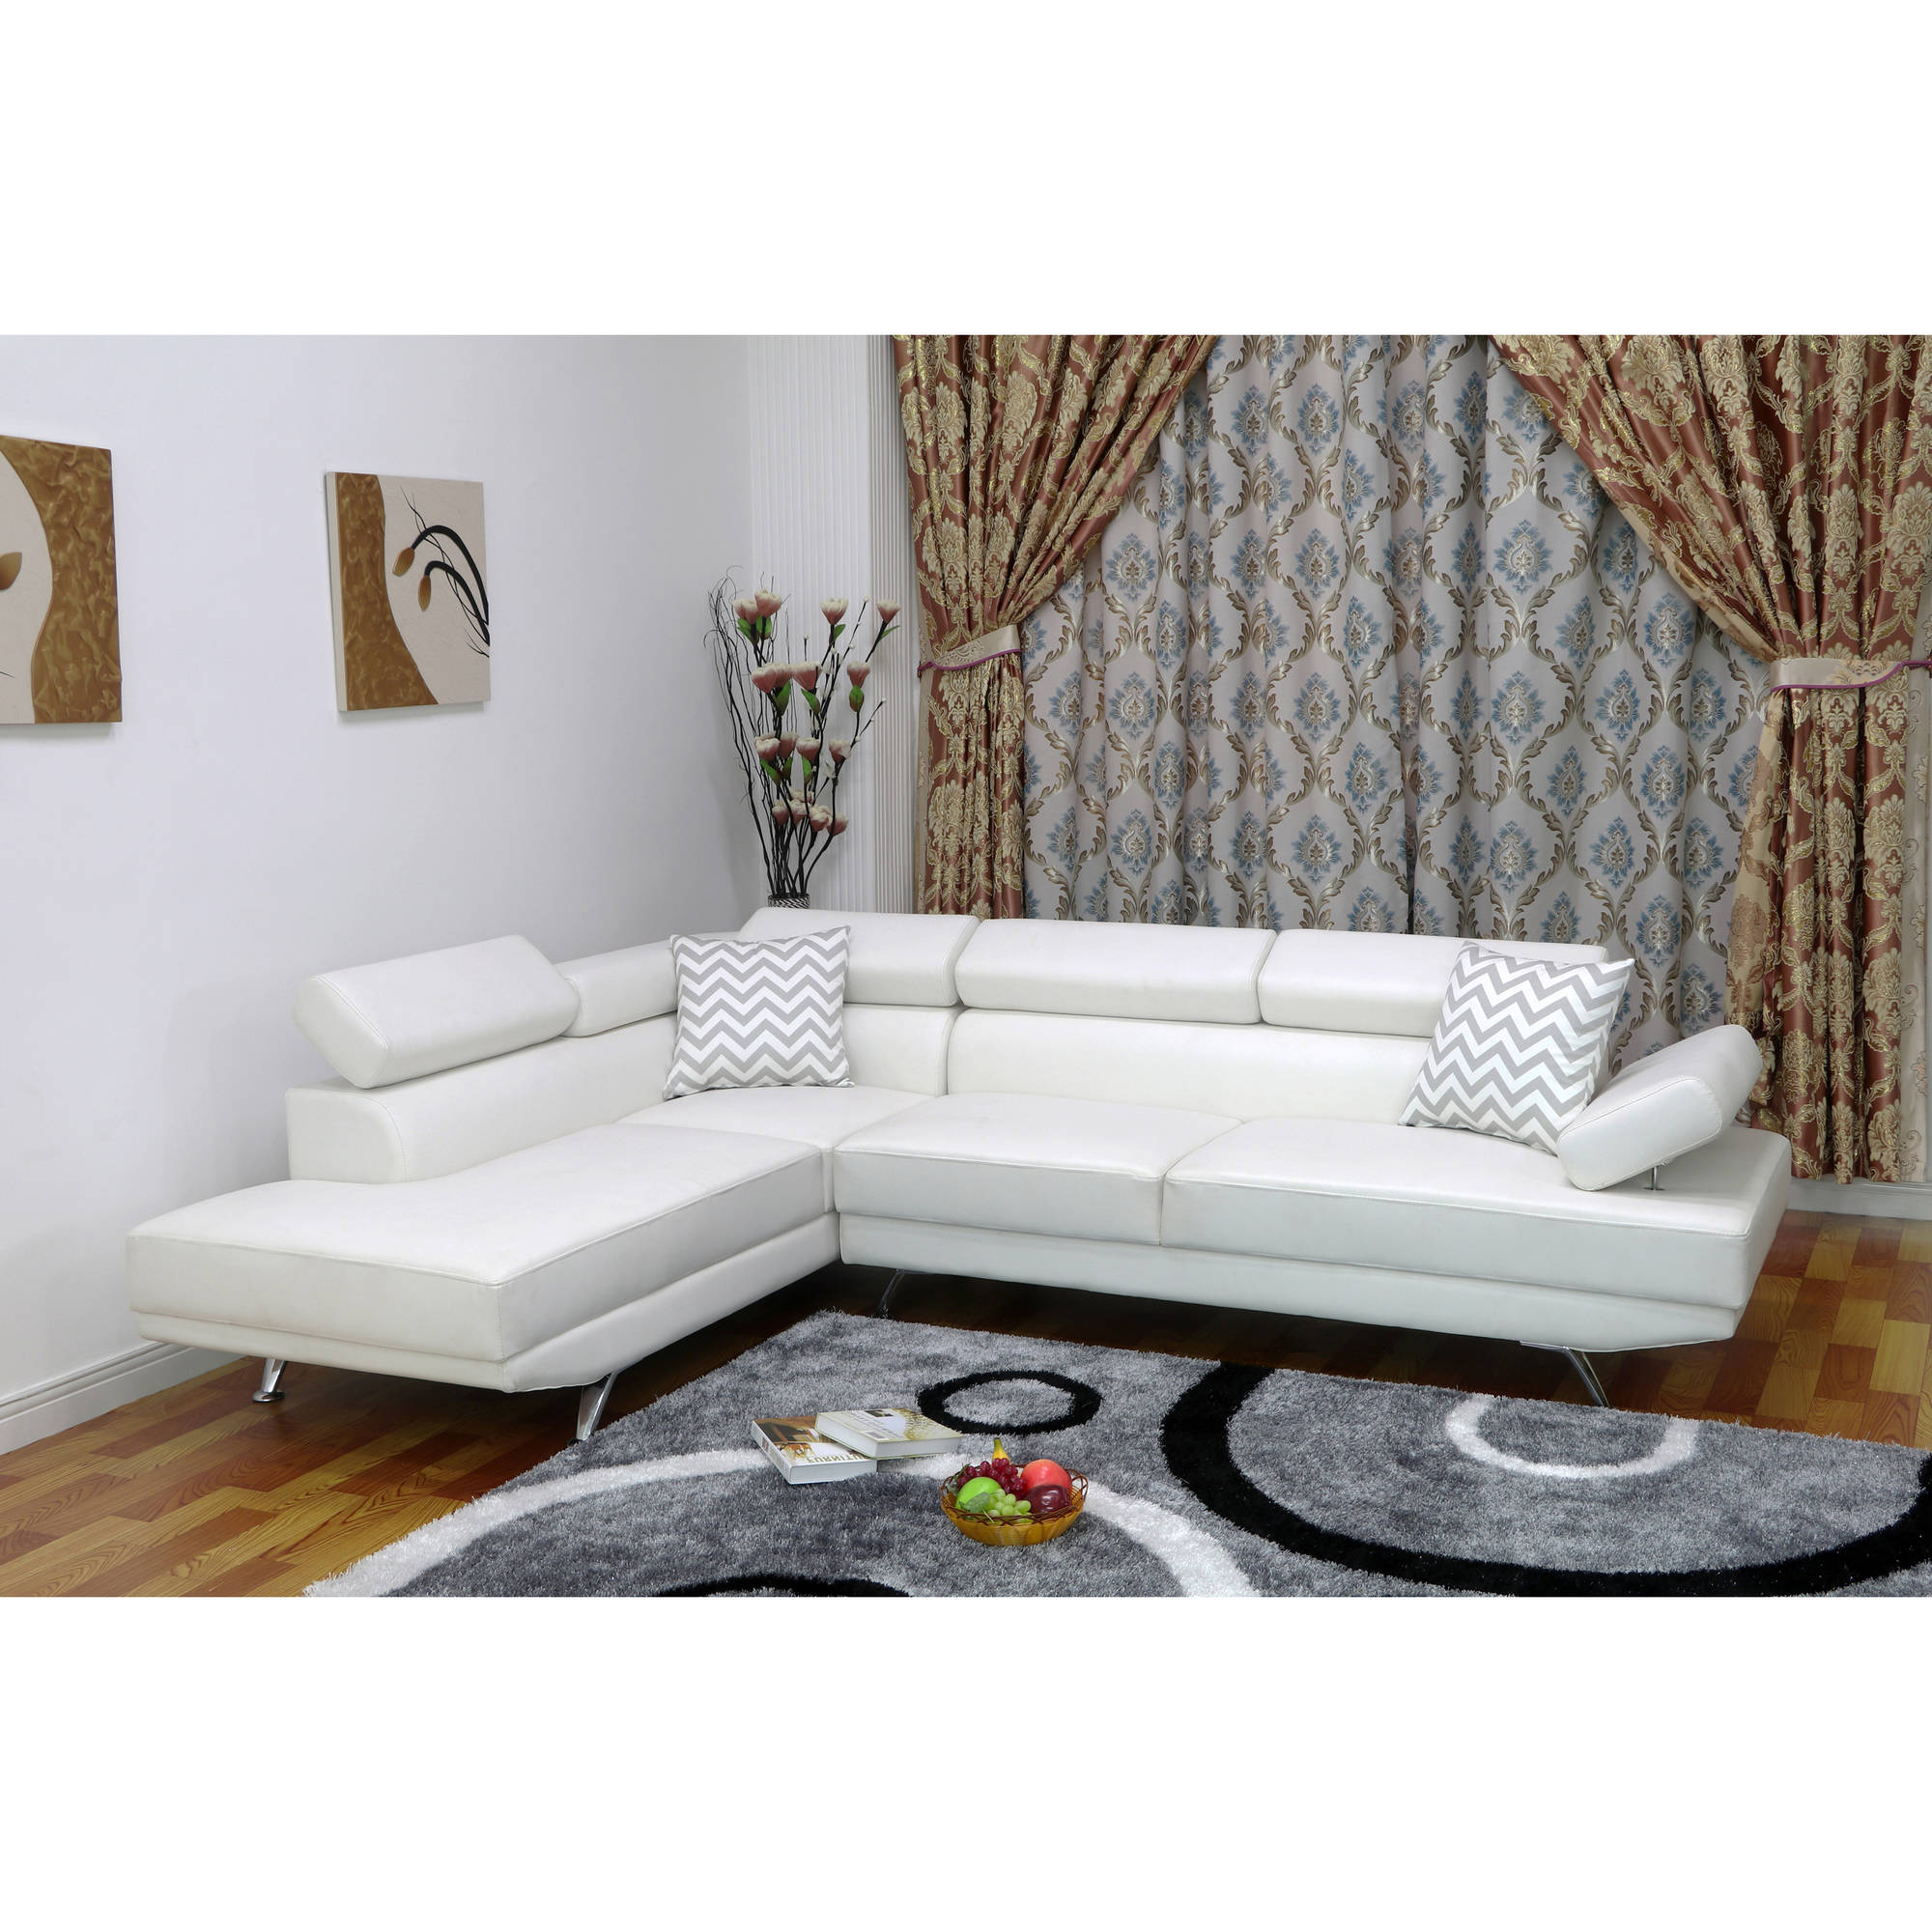 UFE Sofia 2 Piece White Faux Leather Modern Living Room Left